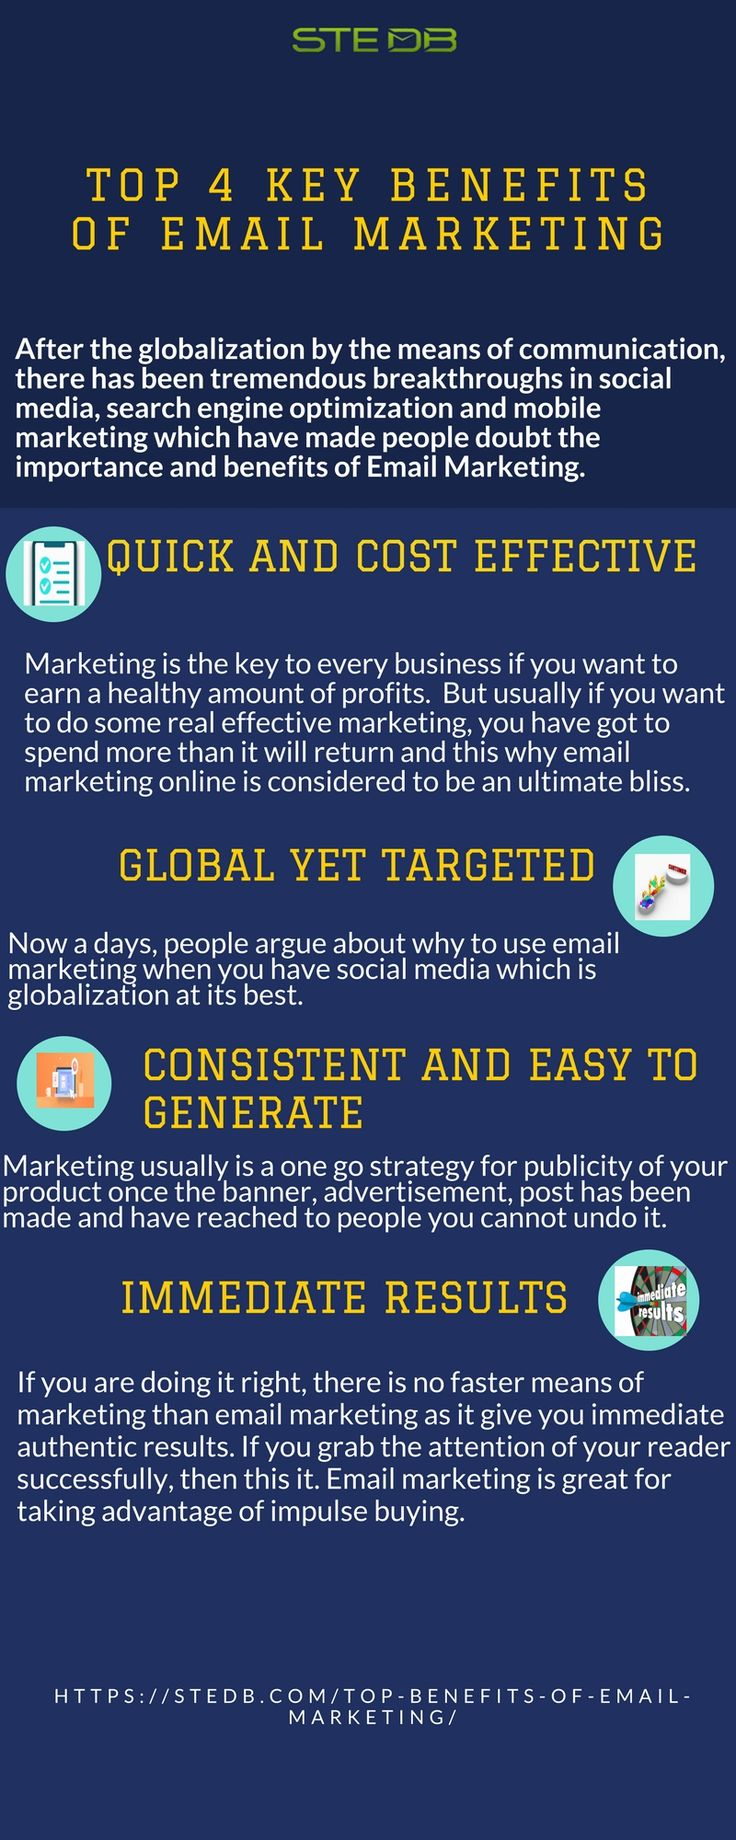 After the globalization by the means of communication, there has been tremendous breakthroughs in social media, search engine optimization and mobile marketing which have made people doubt the importance and benefits of Email Marketing. email marketing solutions,bulk email marketing,Email marketing companies,email campaign services,free email services